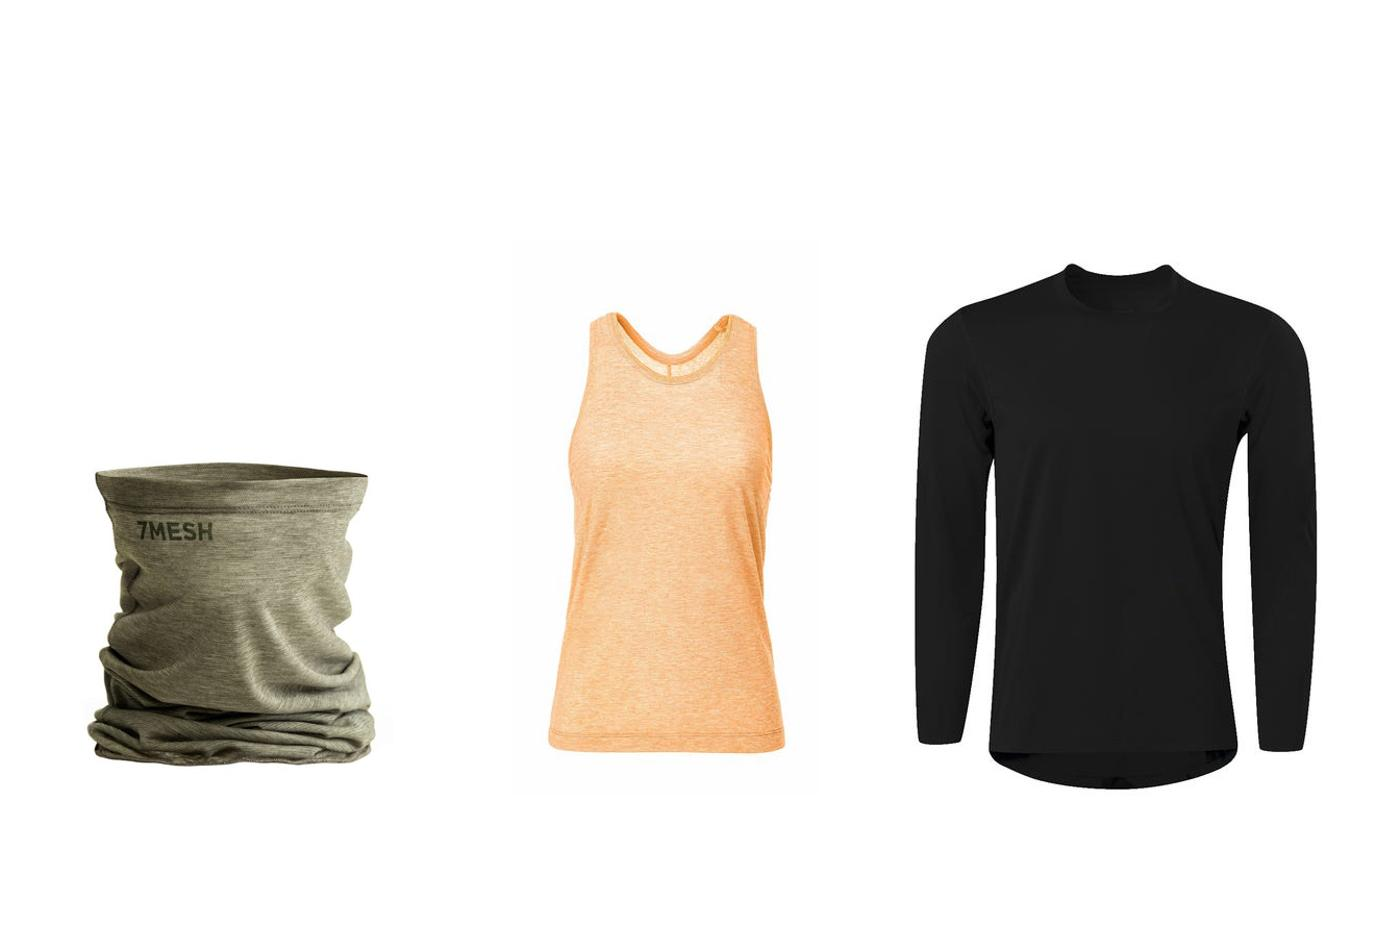 7Mesh Adds New Items to Its Gravel Line for Men and Women